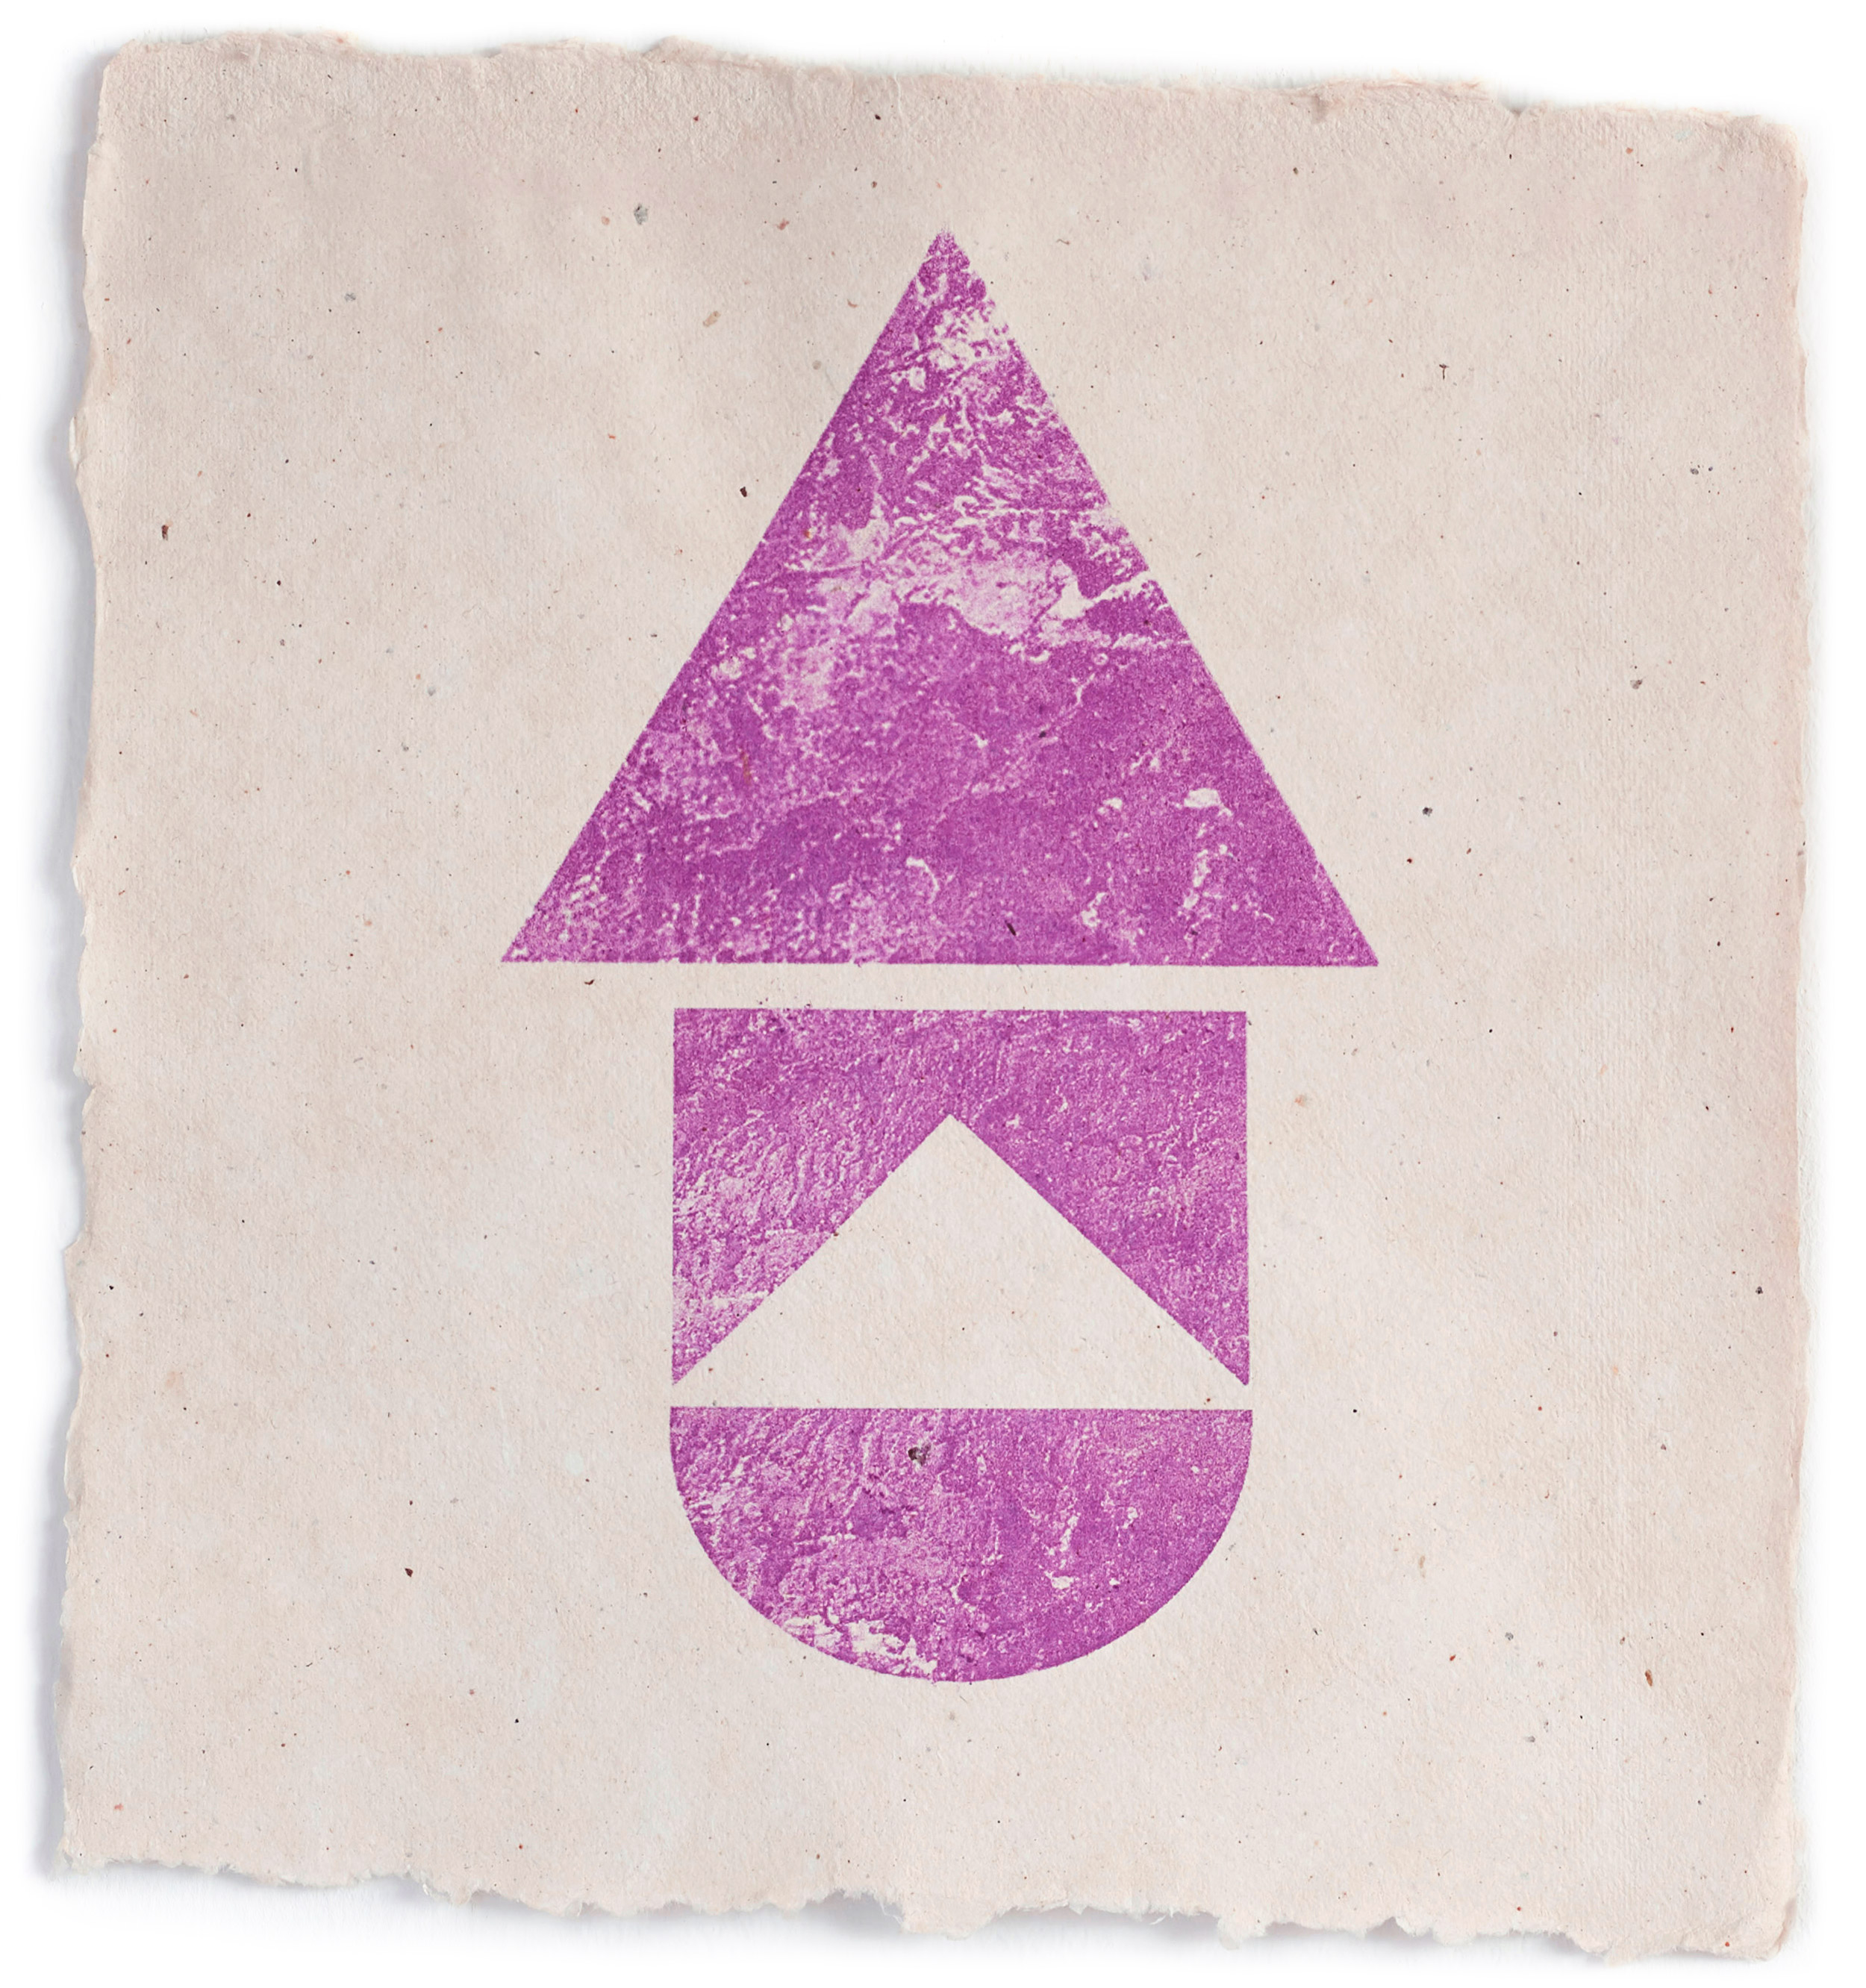 Collagraphy Fuscia  2019 Lithograph on paper 30x32 cm  Edition of 5